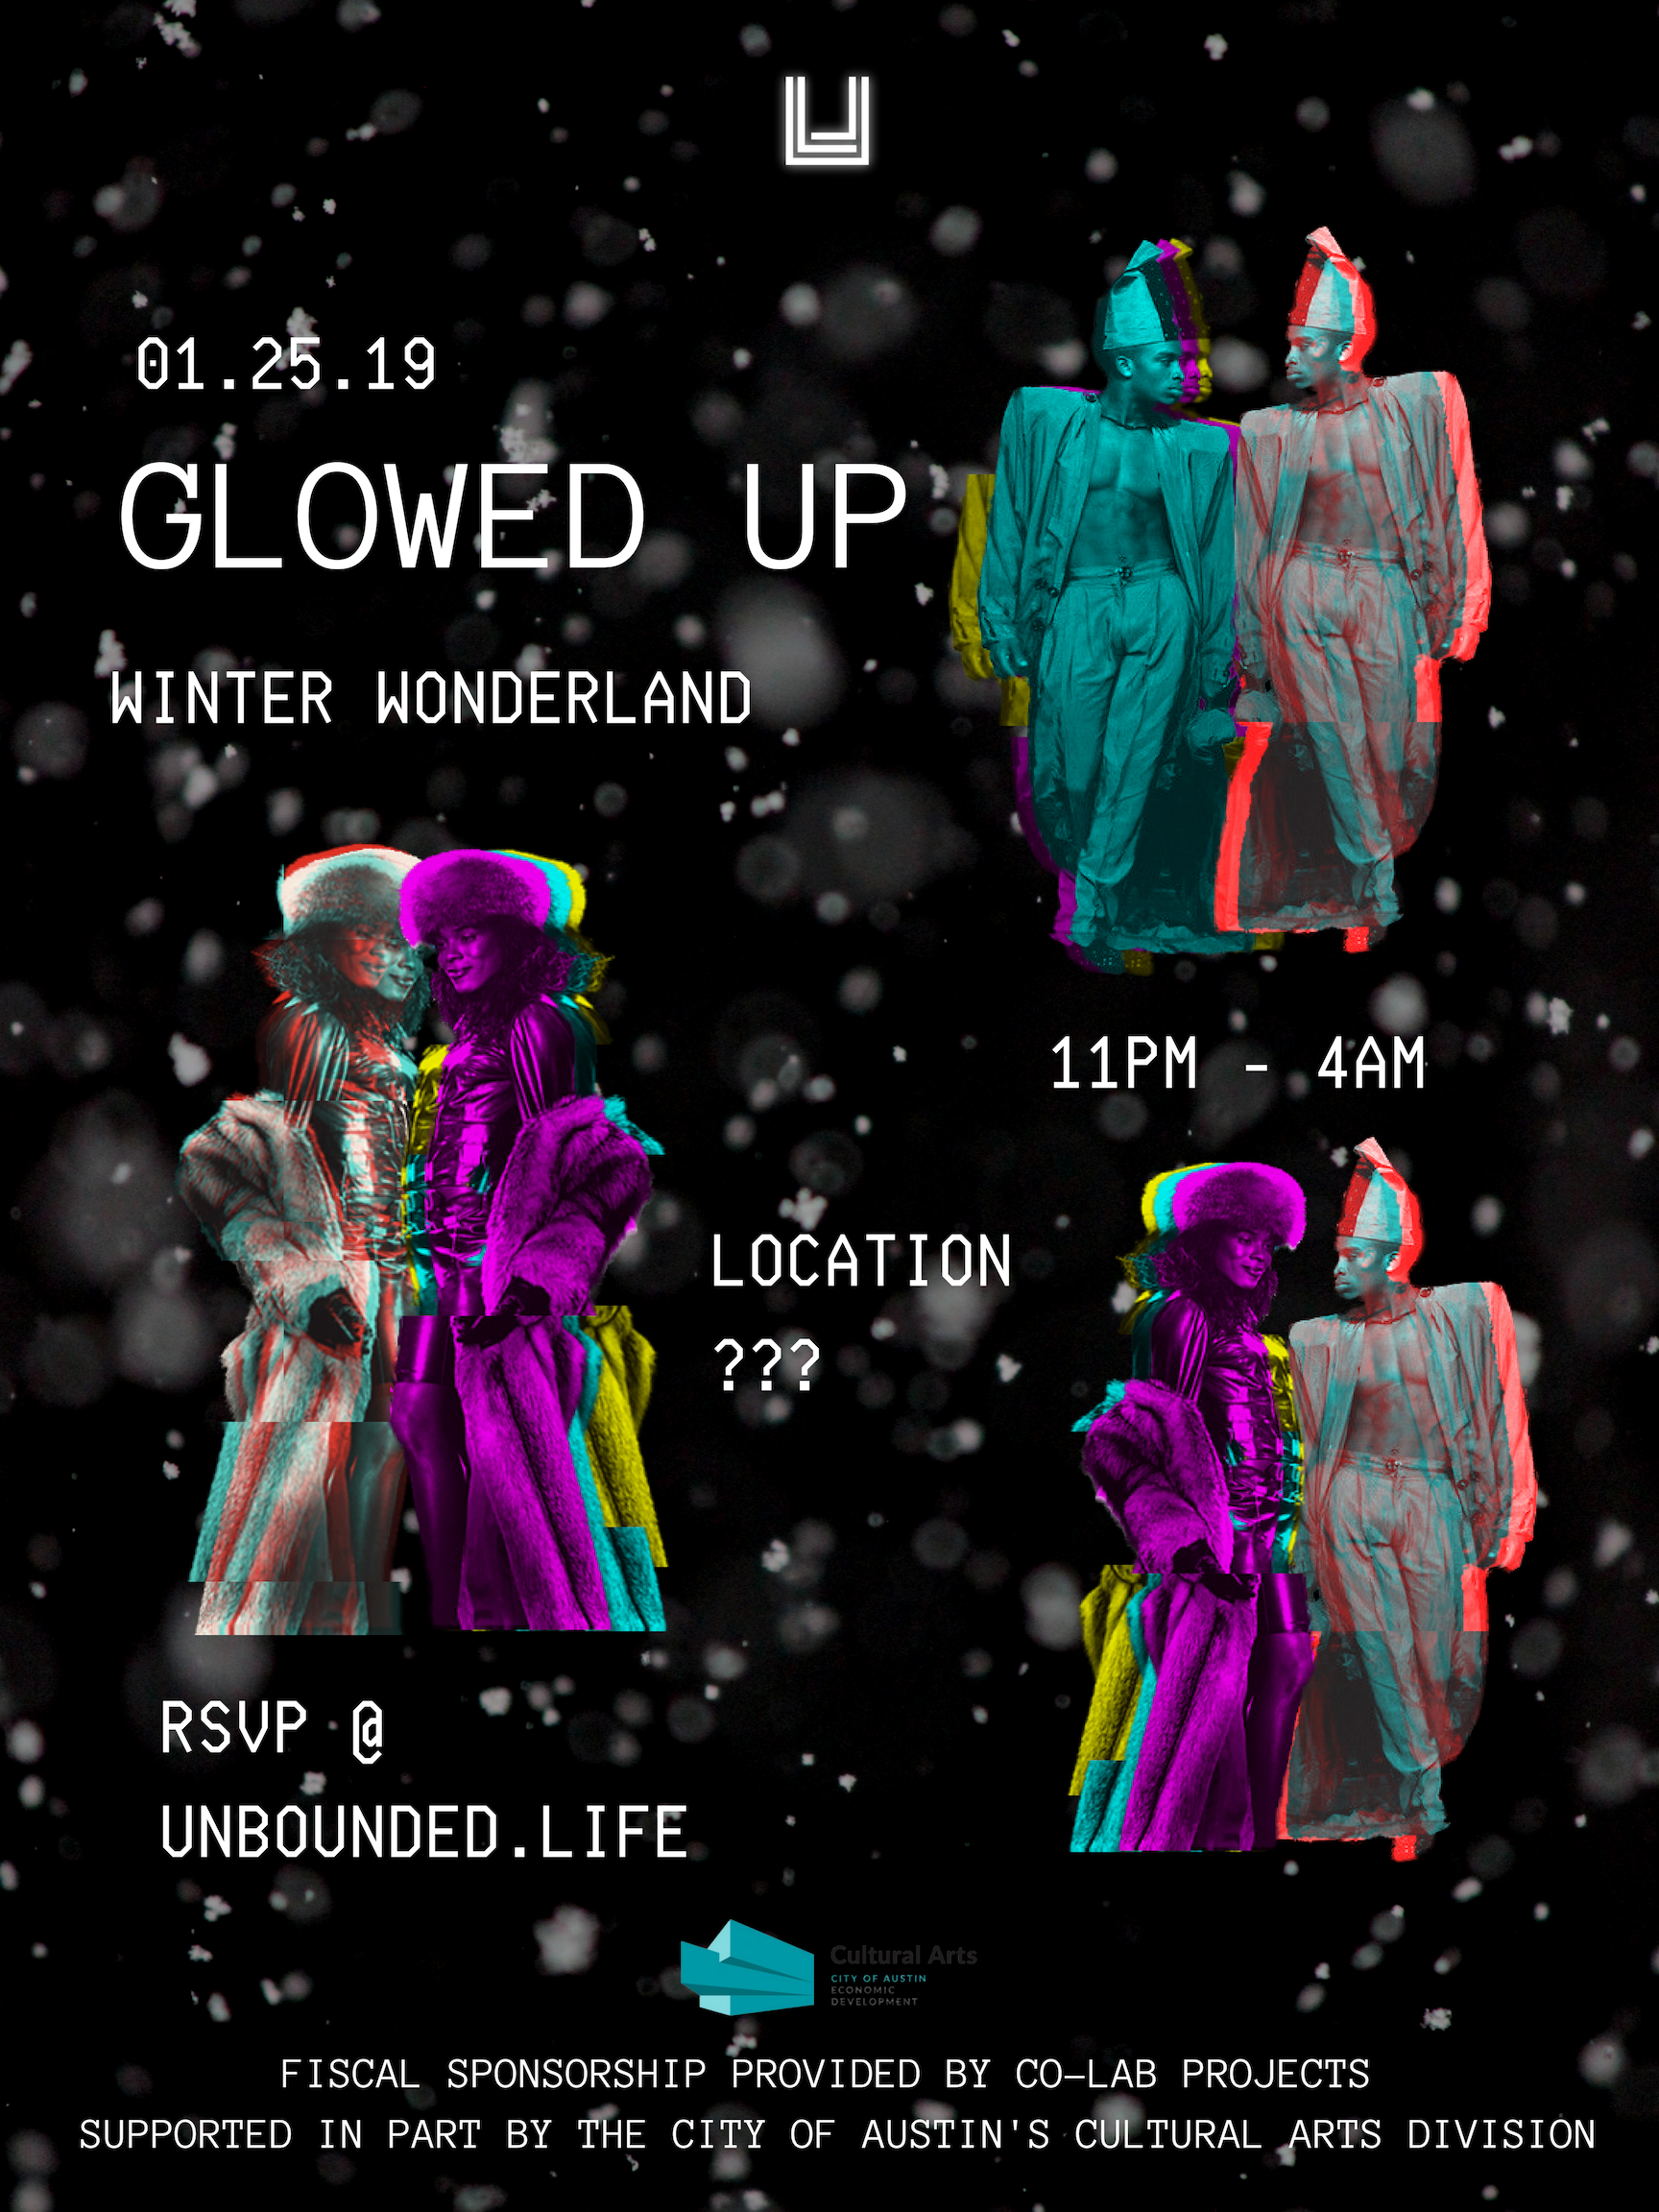 #GLOWEDUPBALL - Glowed Up is fiscally sponsored by Co-Lab Projects and supported in part by the City of Austin Cultural Arts Division.